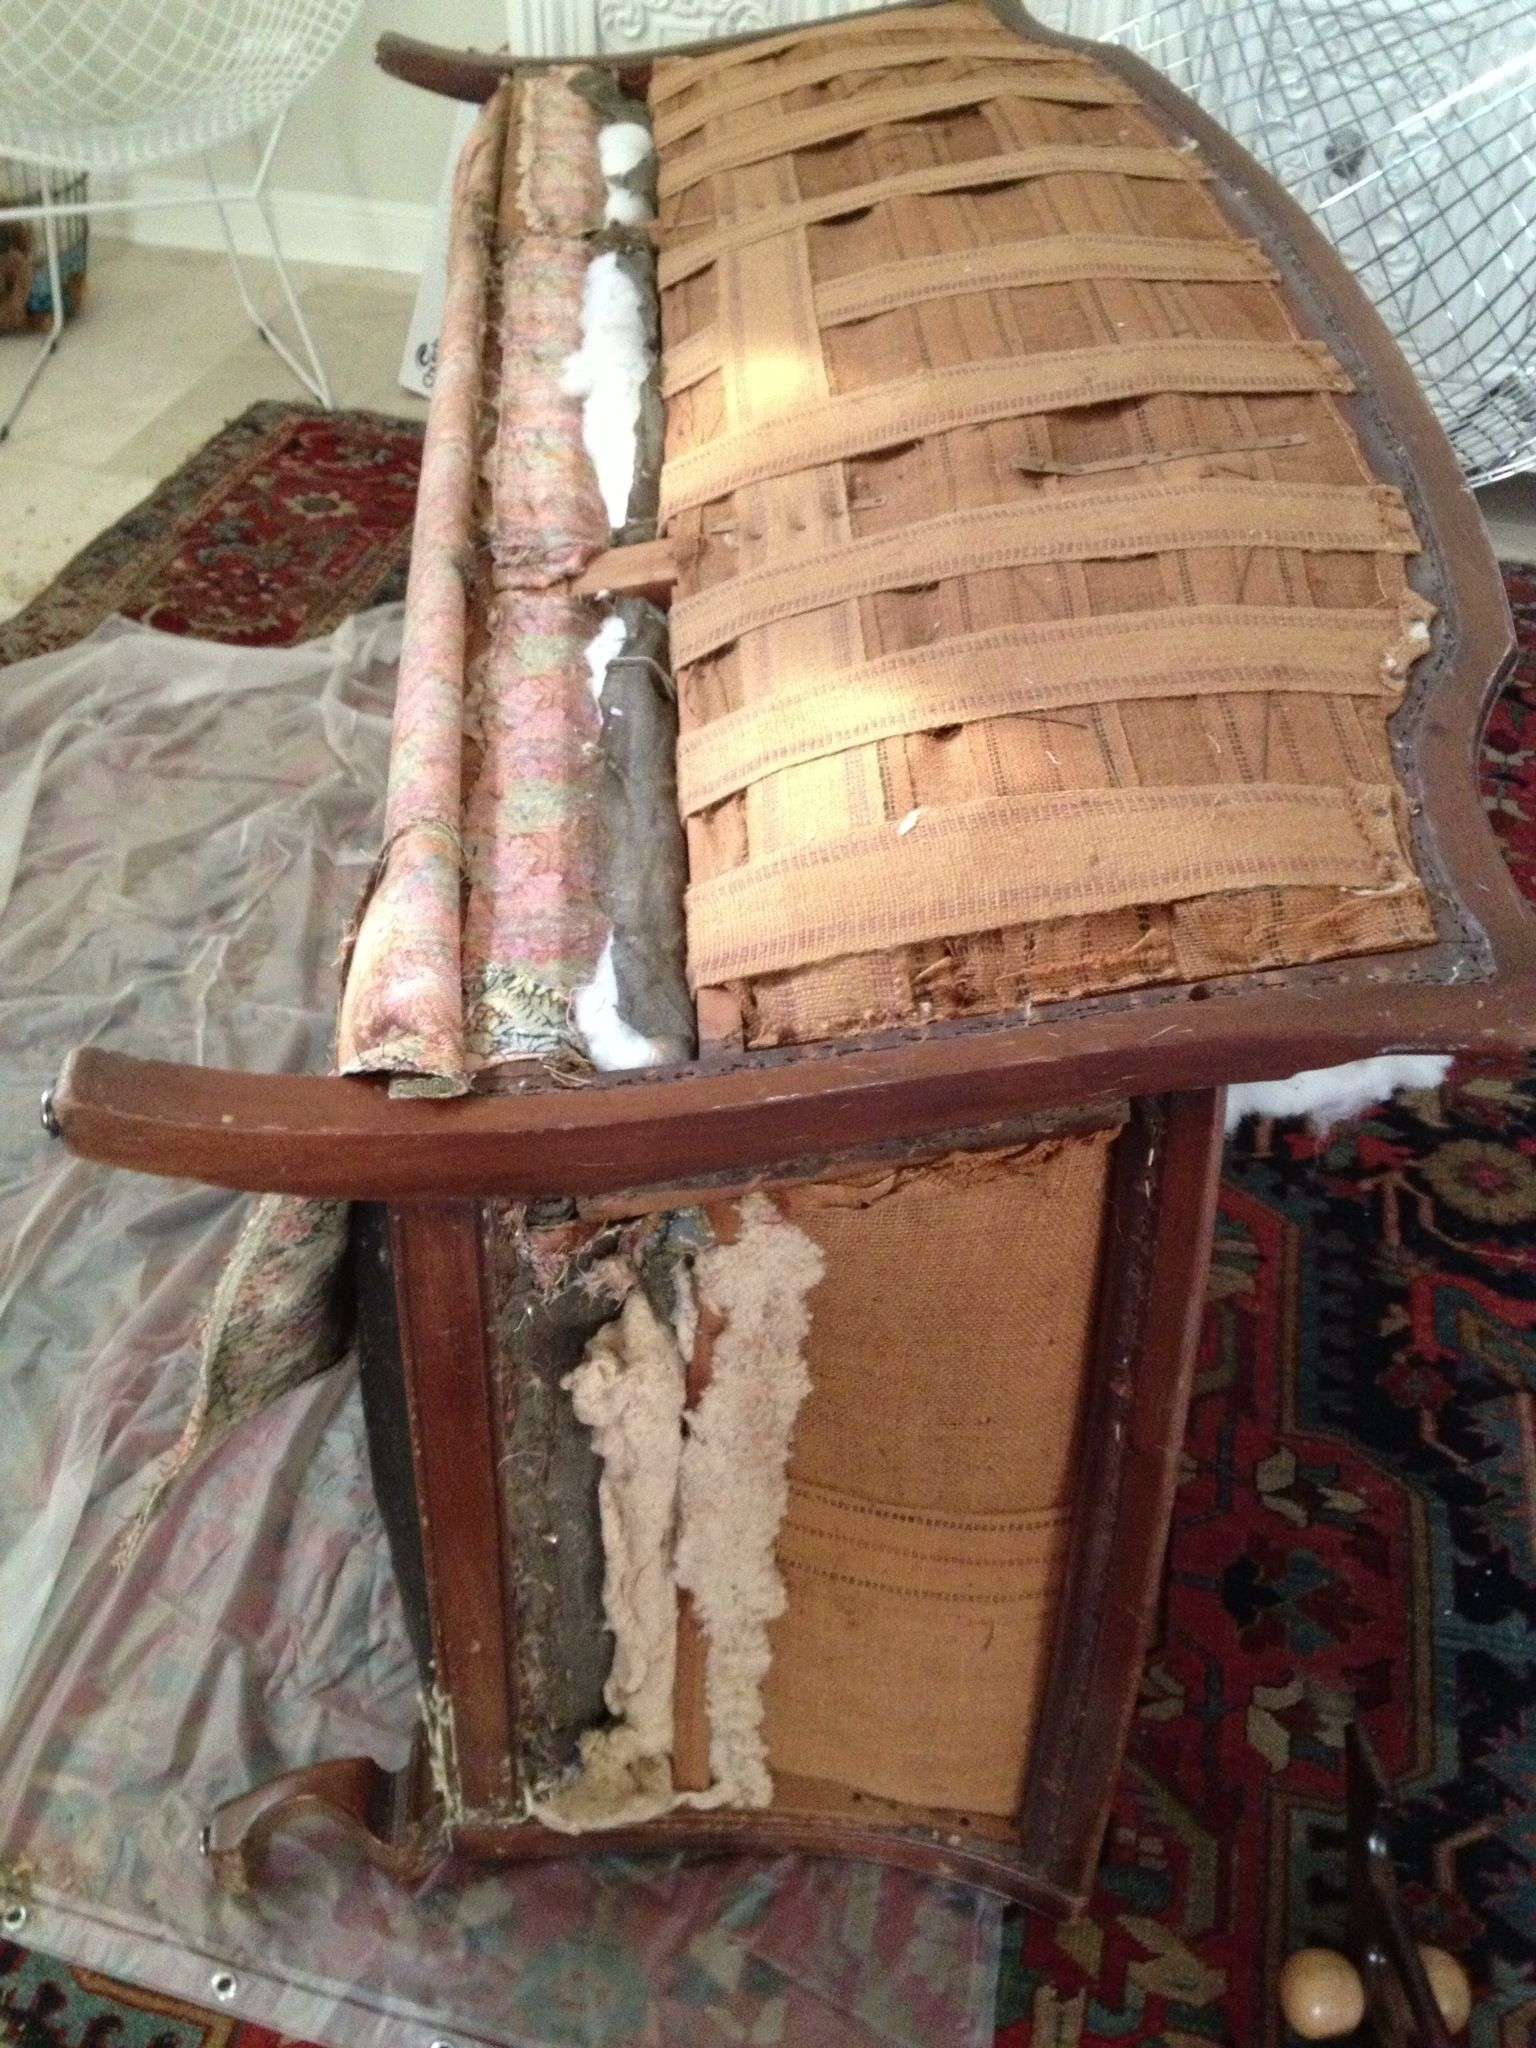 Upholstery Couch Diy Re Upholstering An Antique Sofa The Diy Way